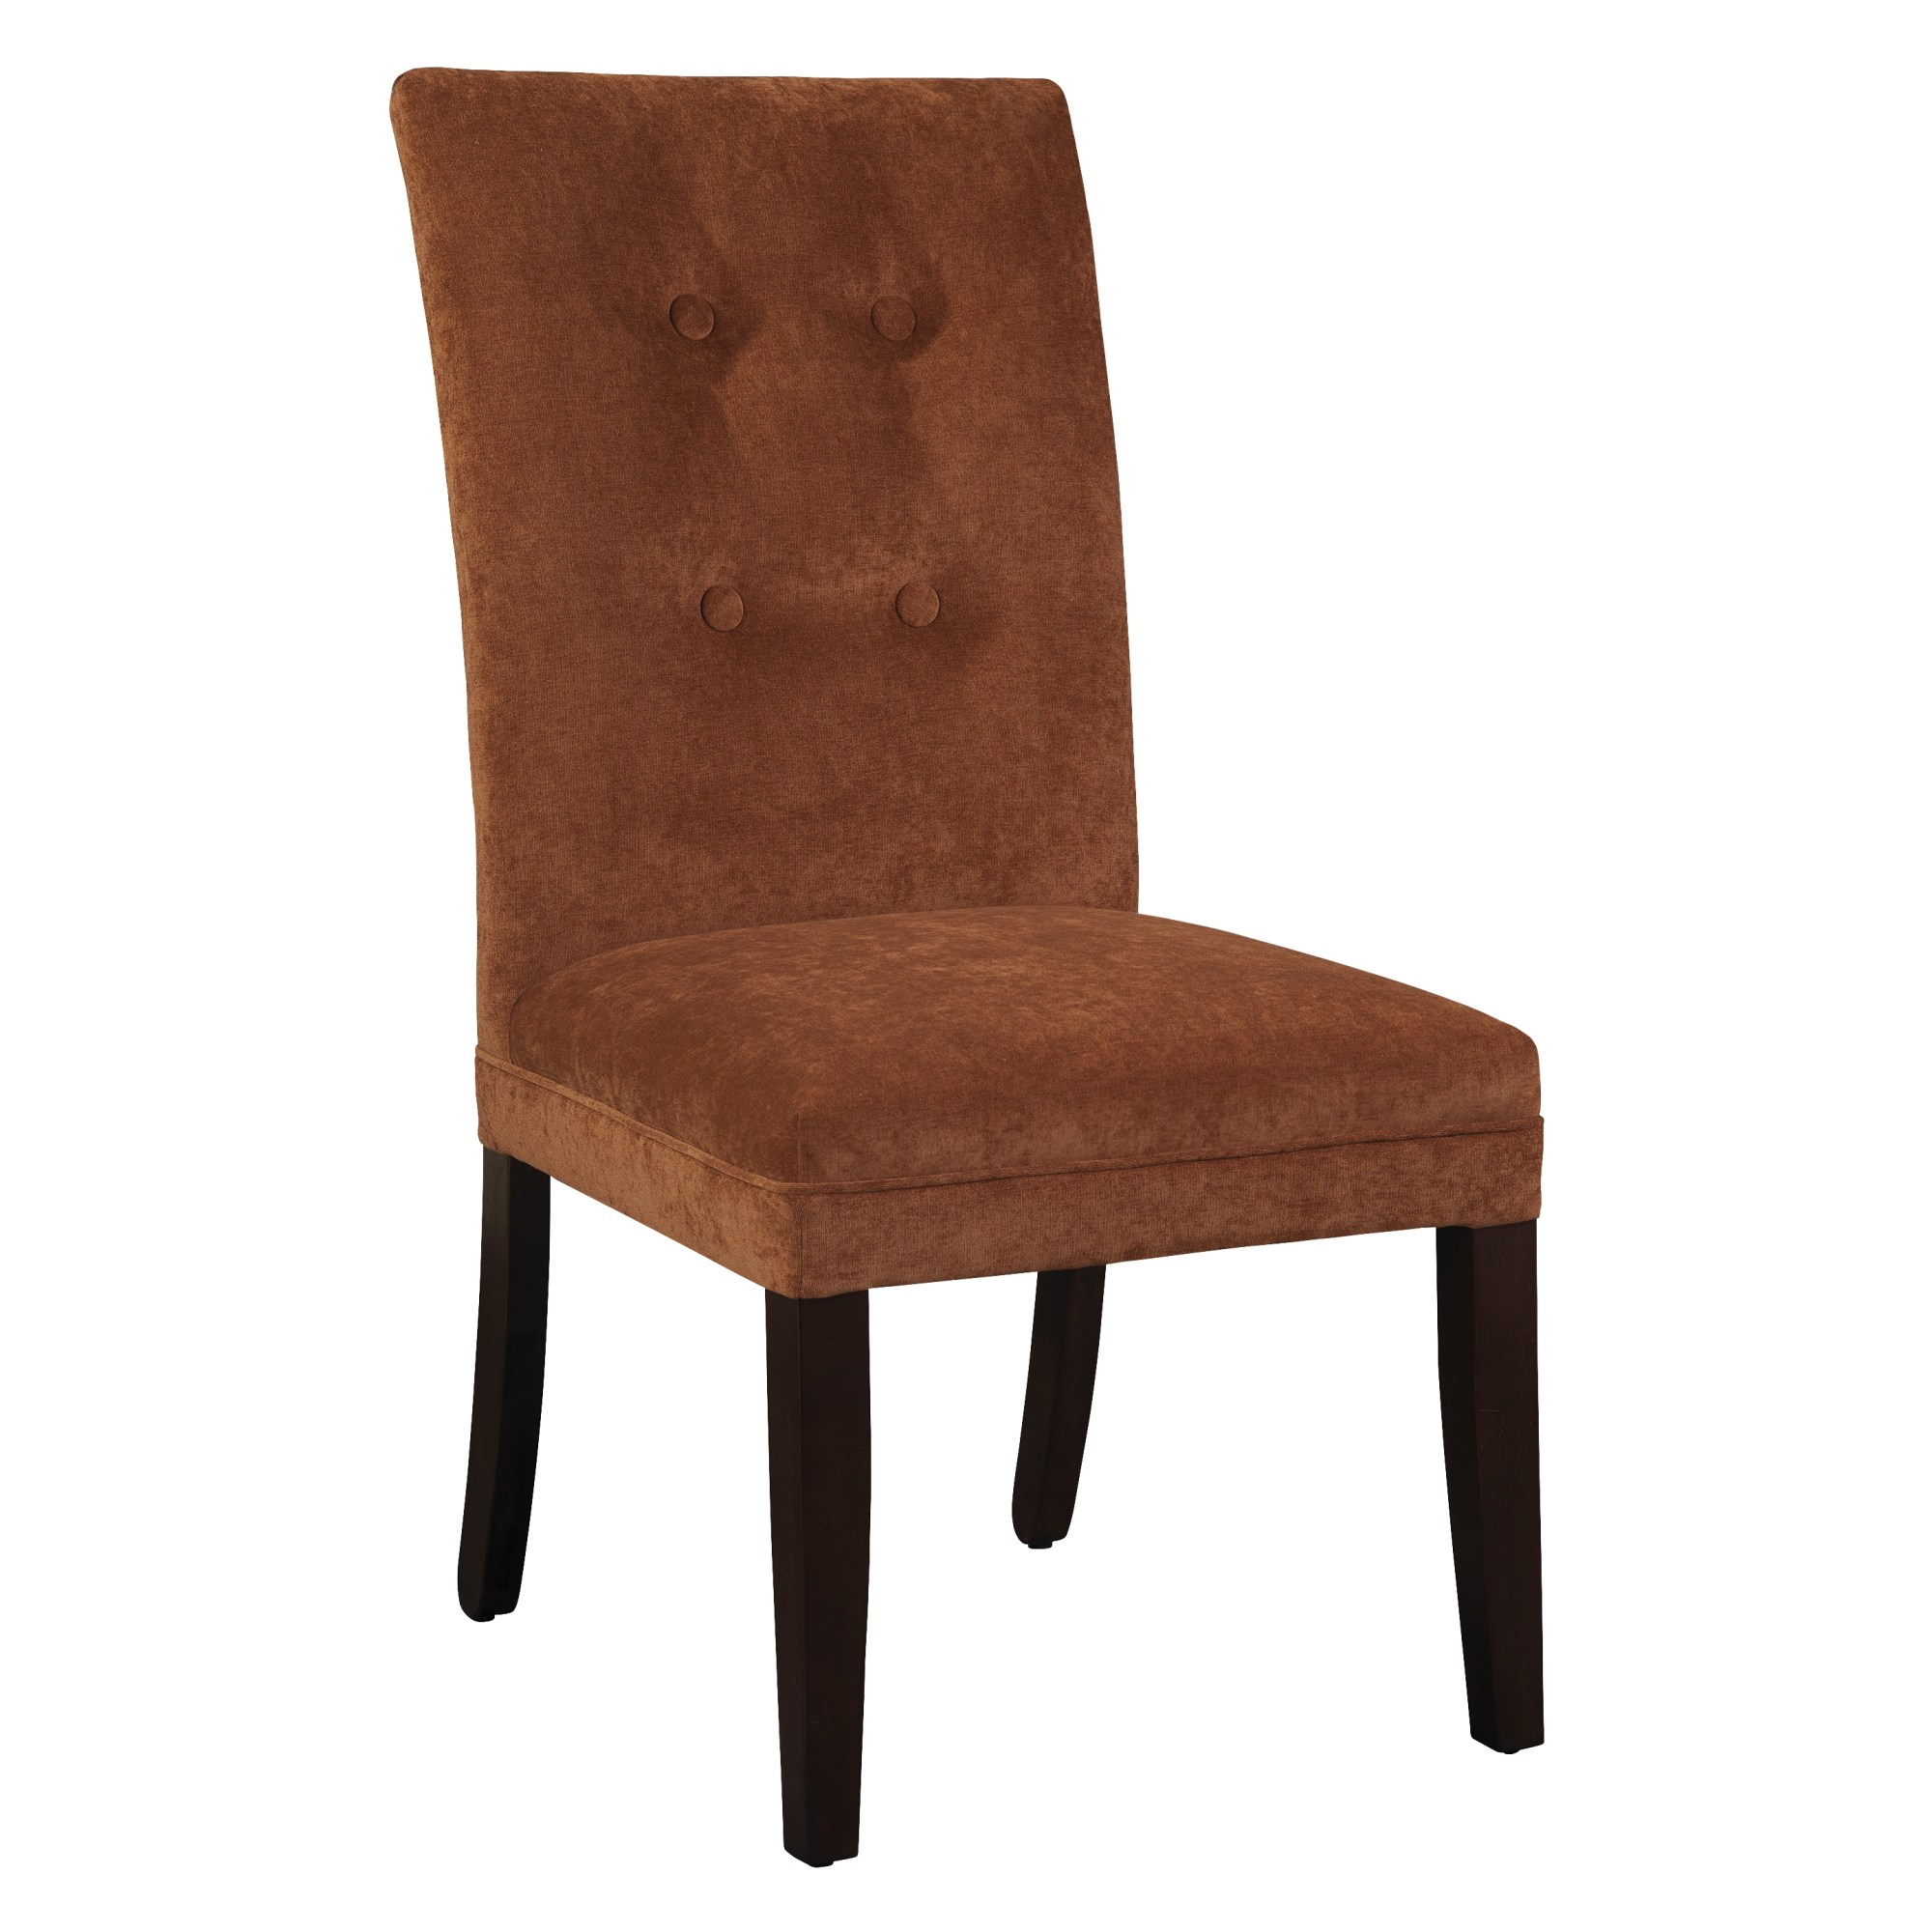 Image for 7260 Joanna Dining Chair with Buttons from Hekman Official Website